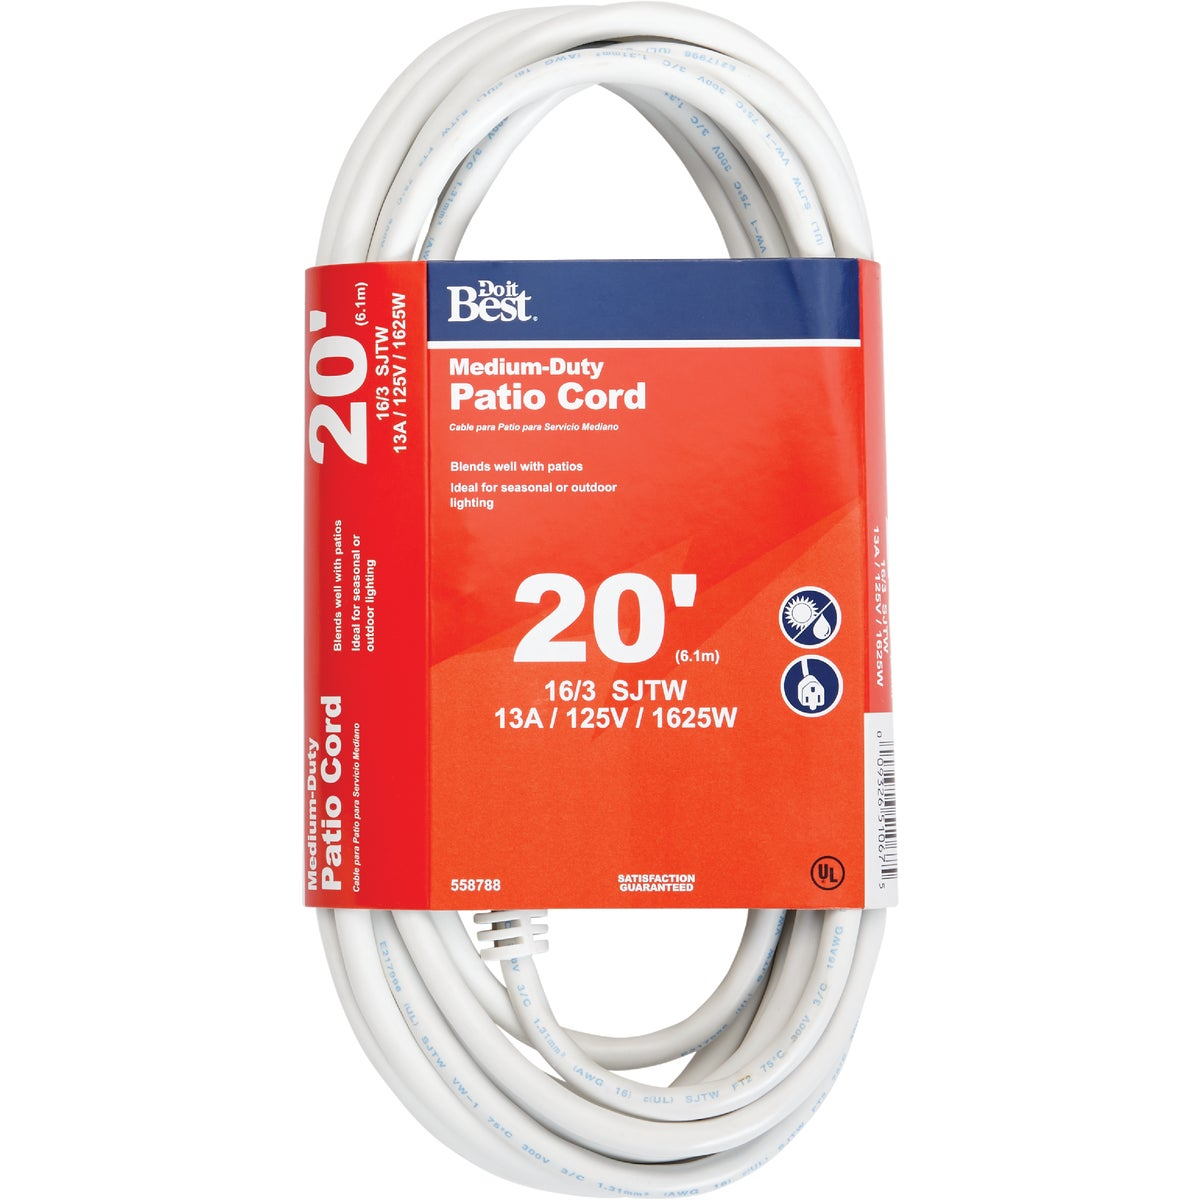 20' 16/3 WHITE EXT CORD - OU-JTW163-20X-WH by Do it Best